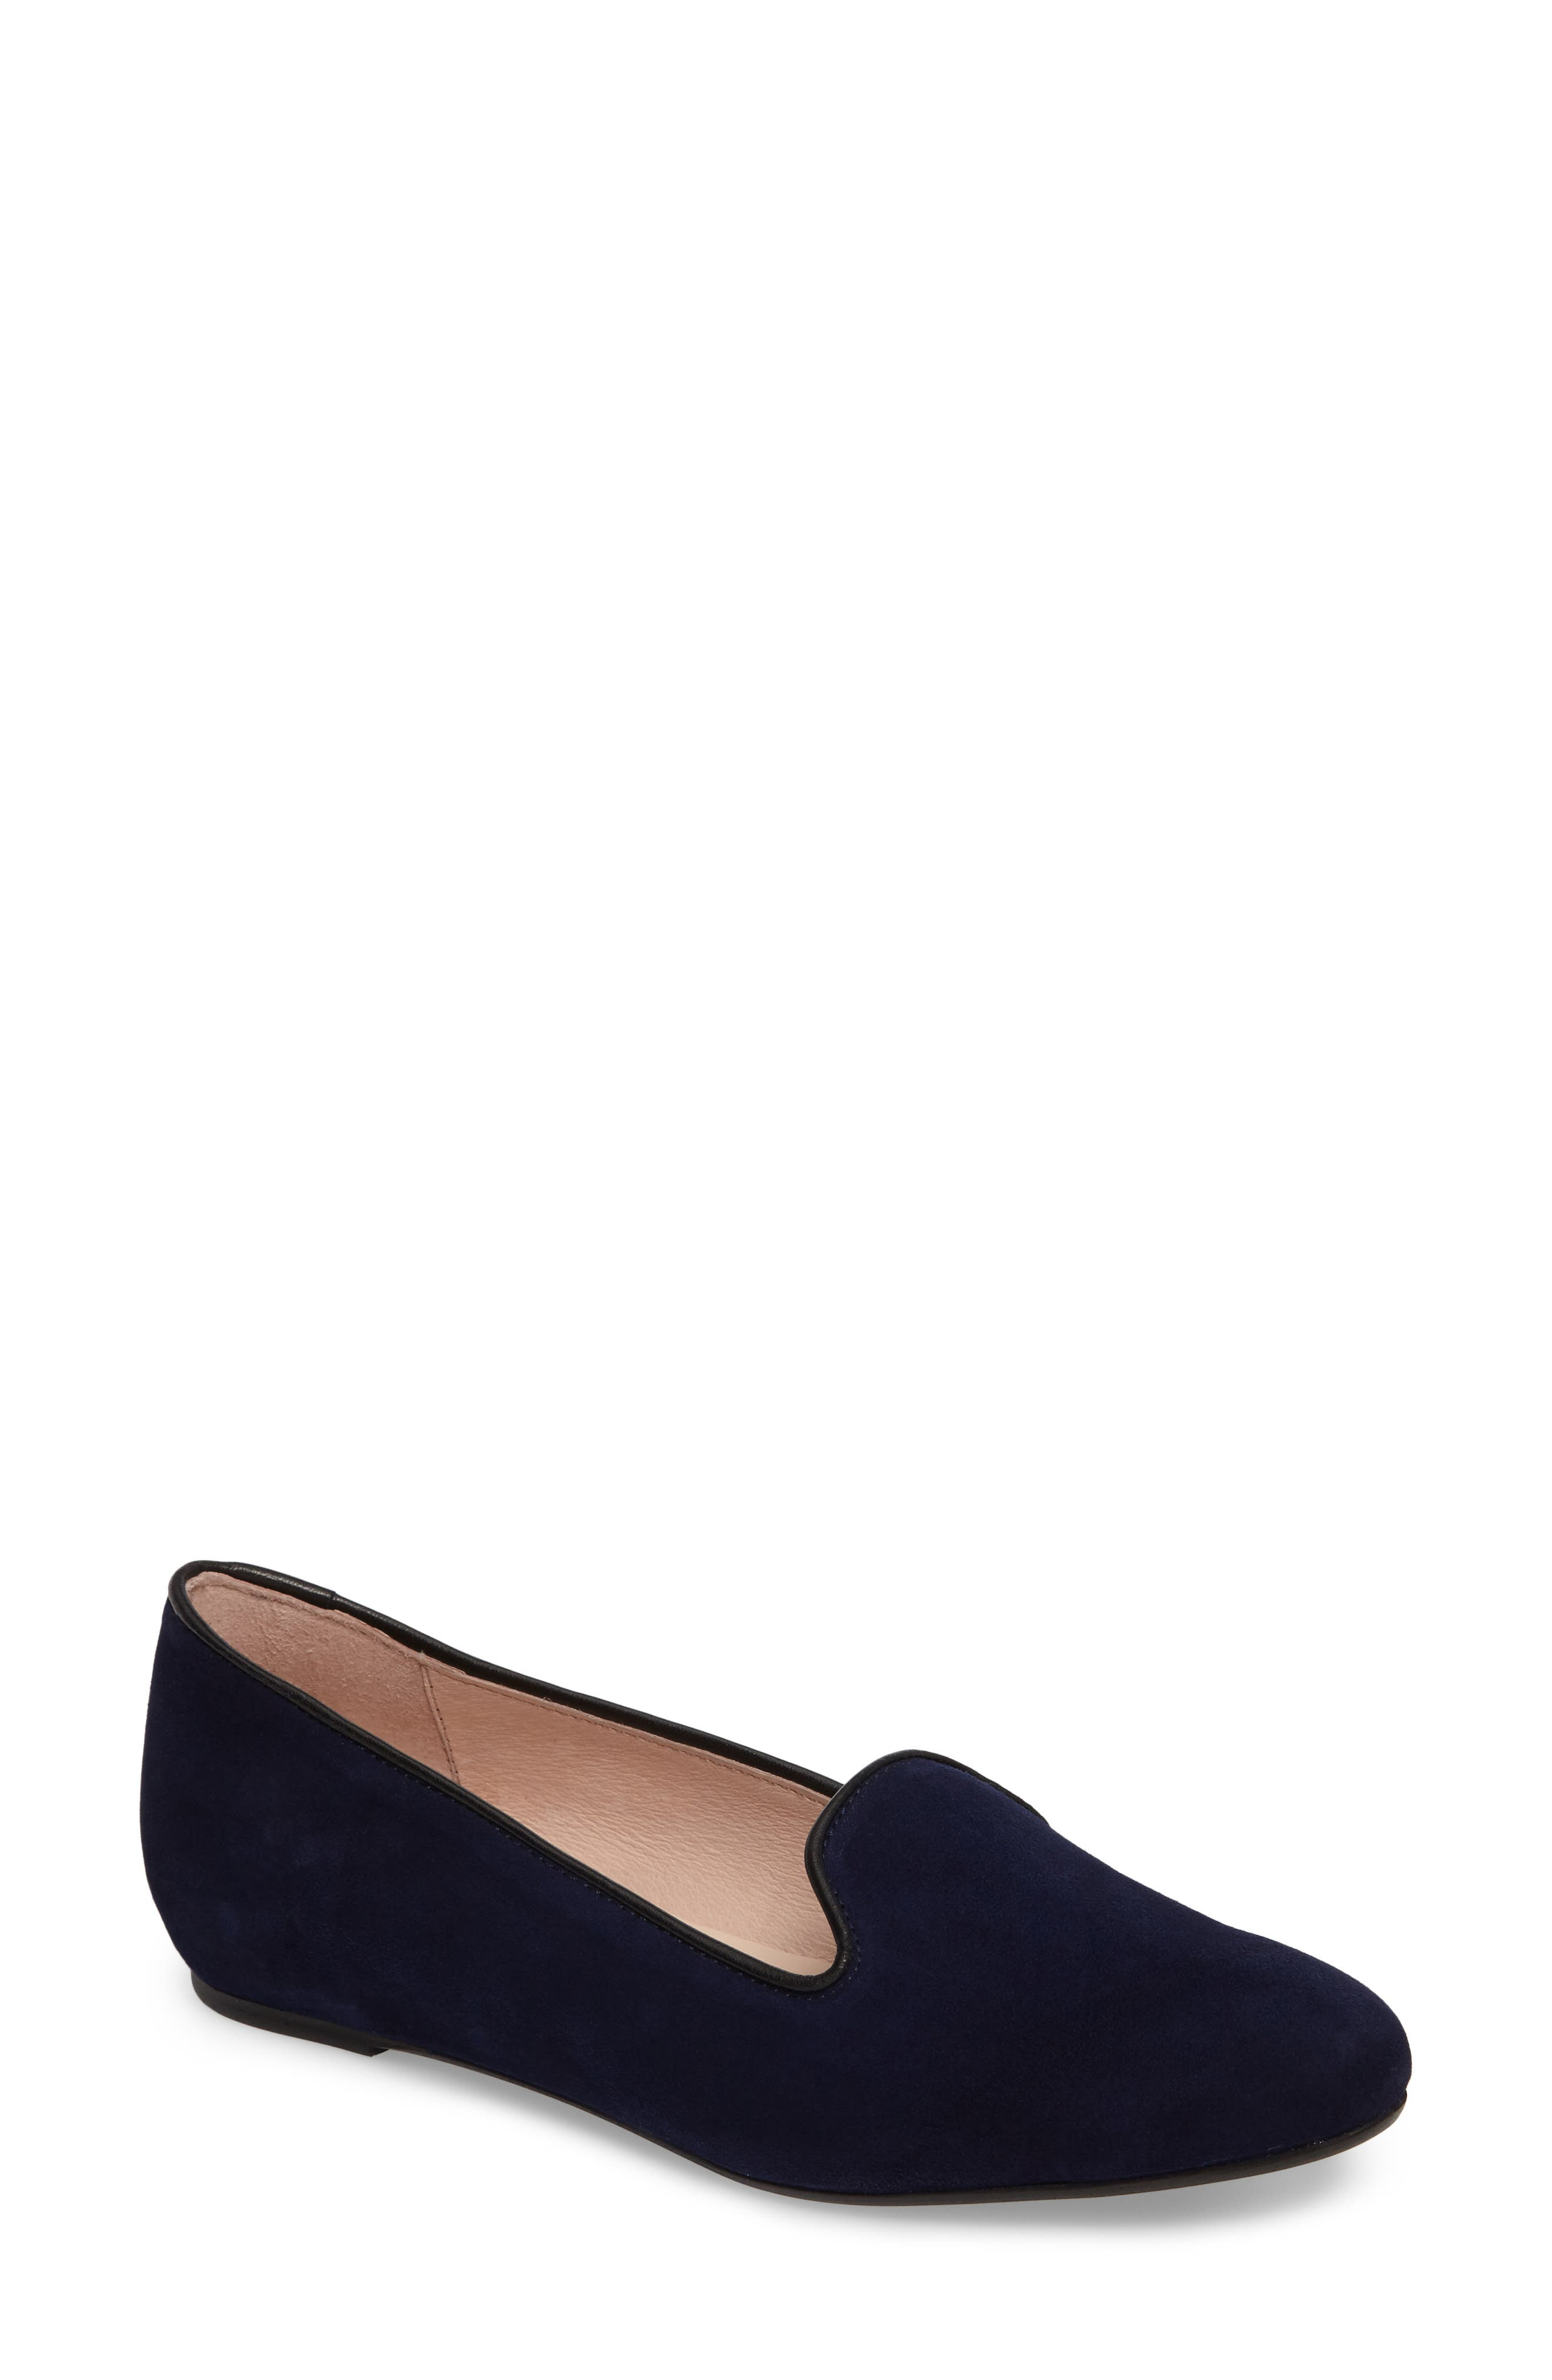 Main Image - patricia green Waverly Loafer Flat (Women)